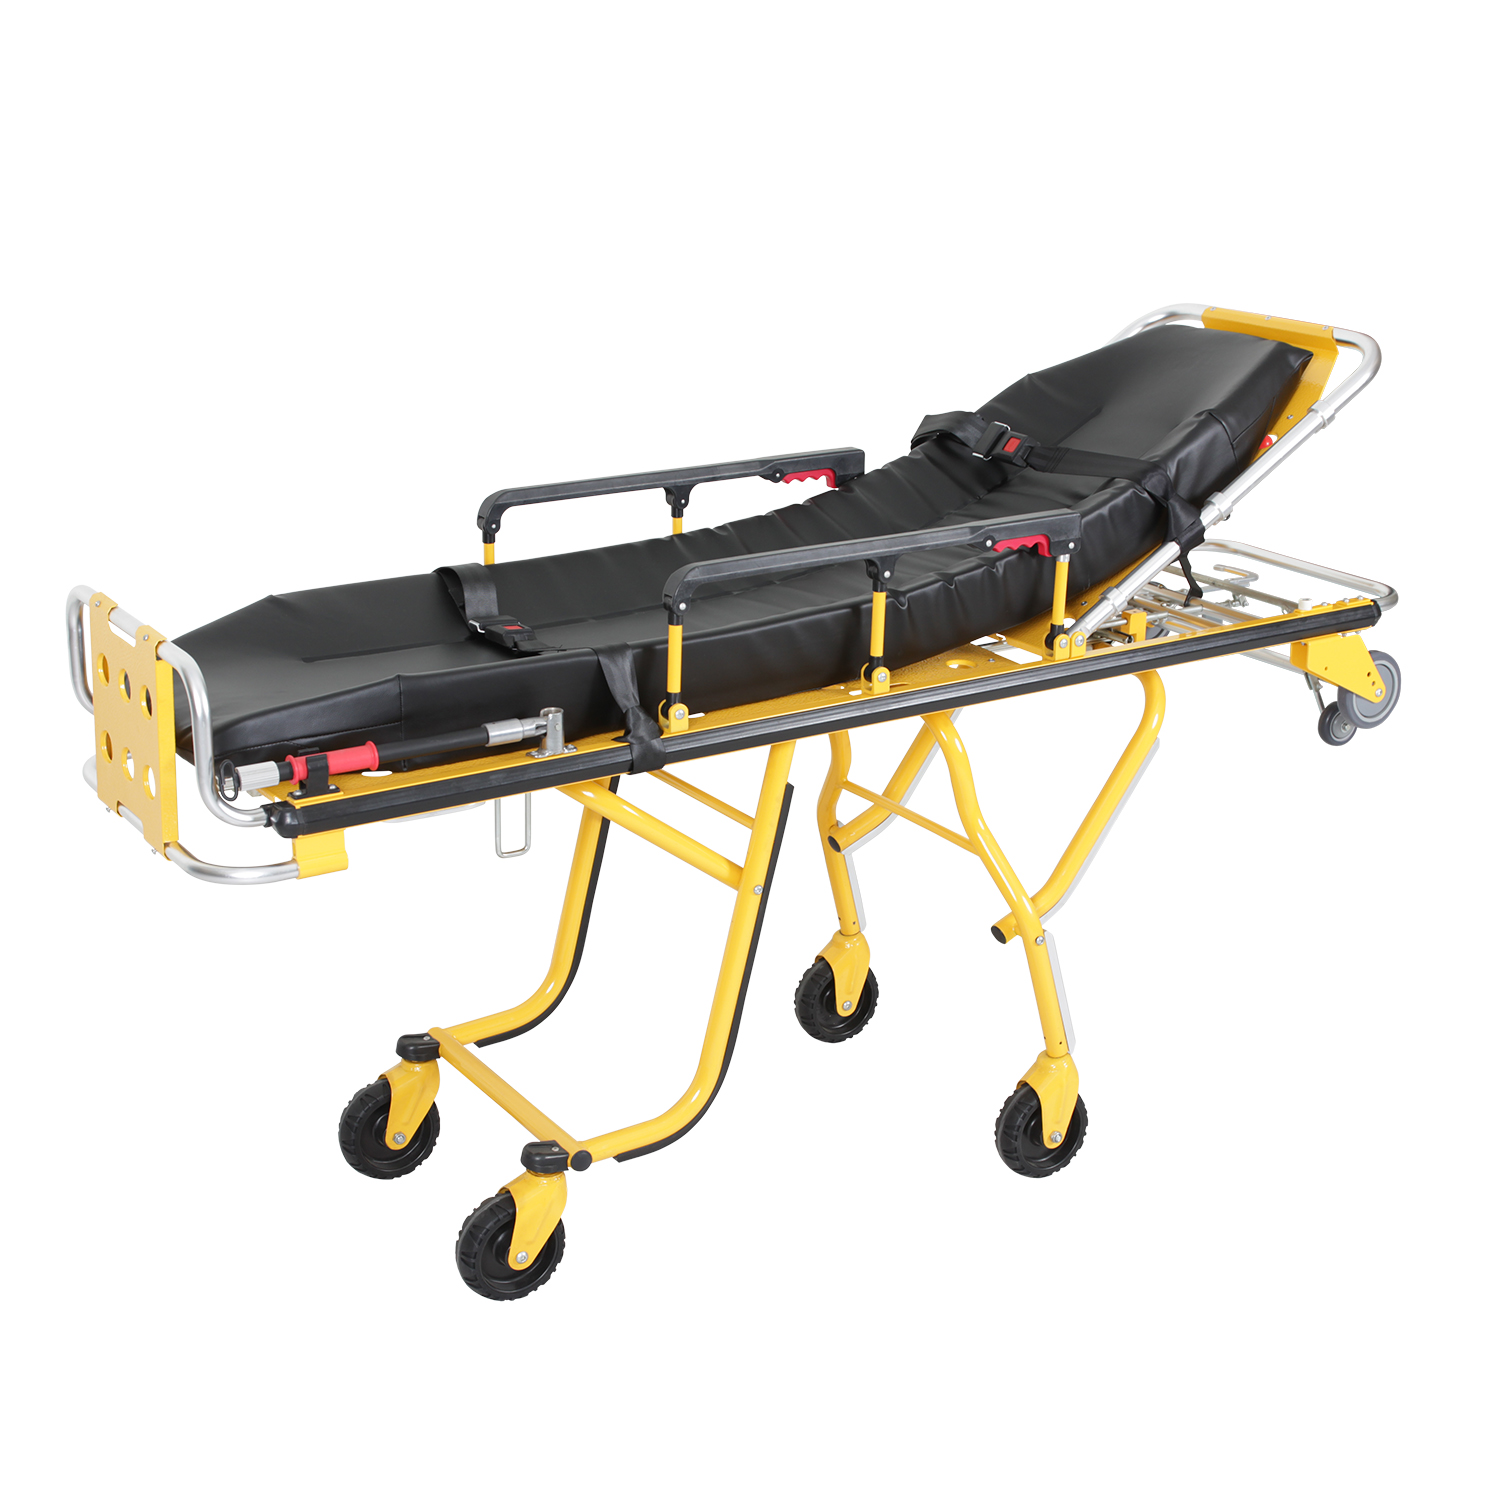 Avante Rover Ambulance Stretcher